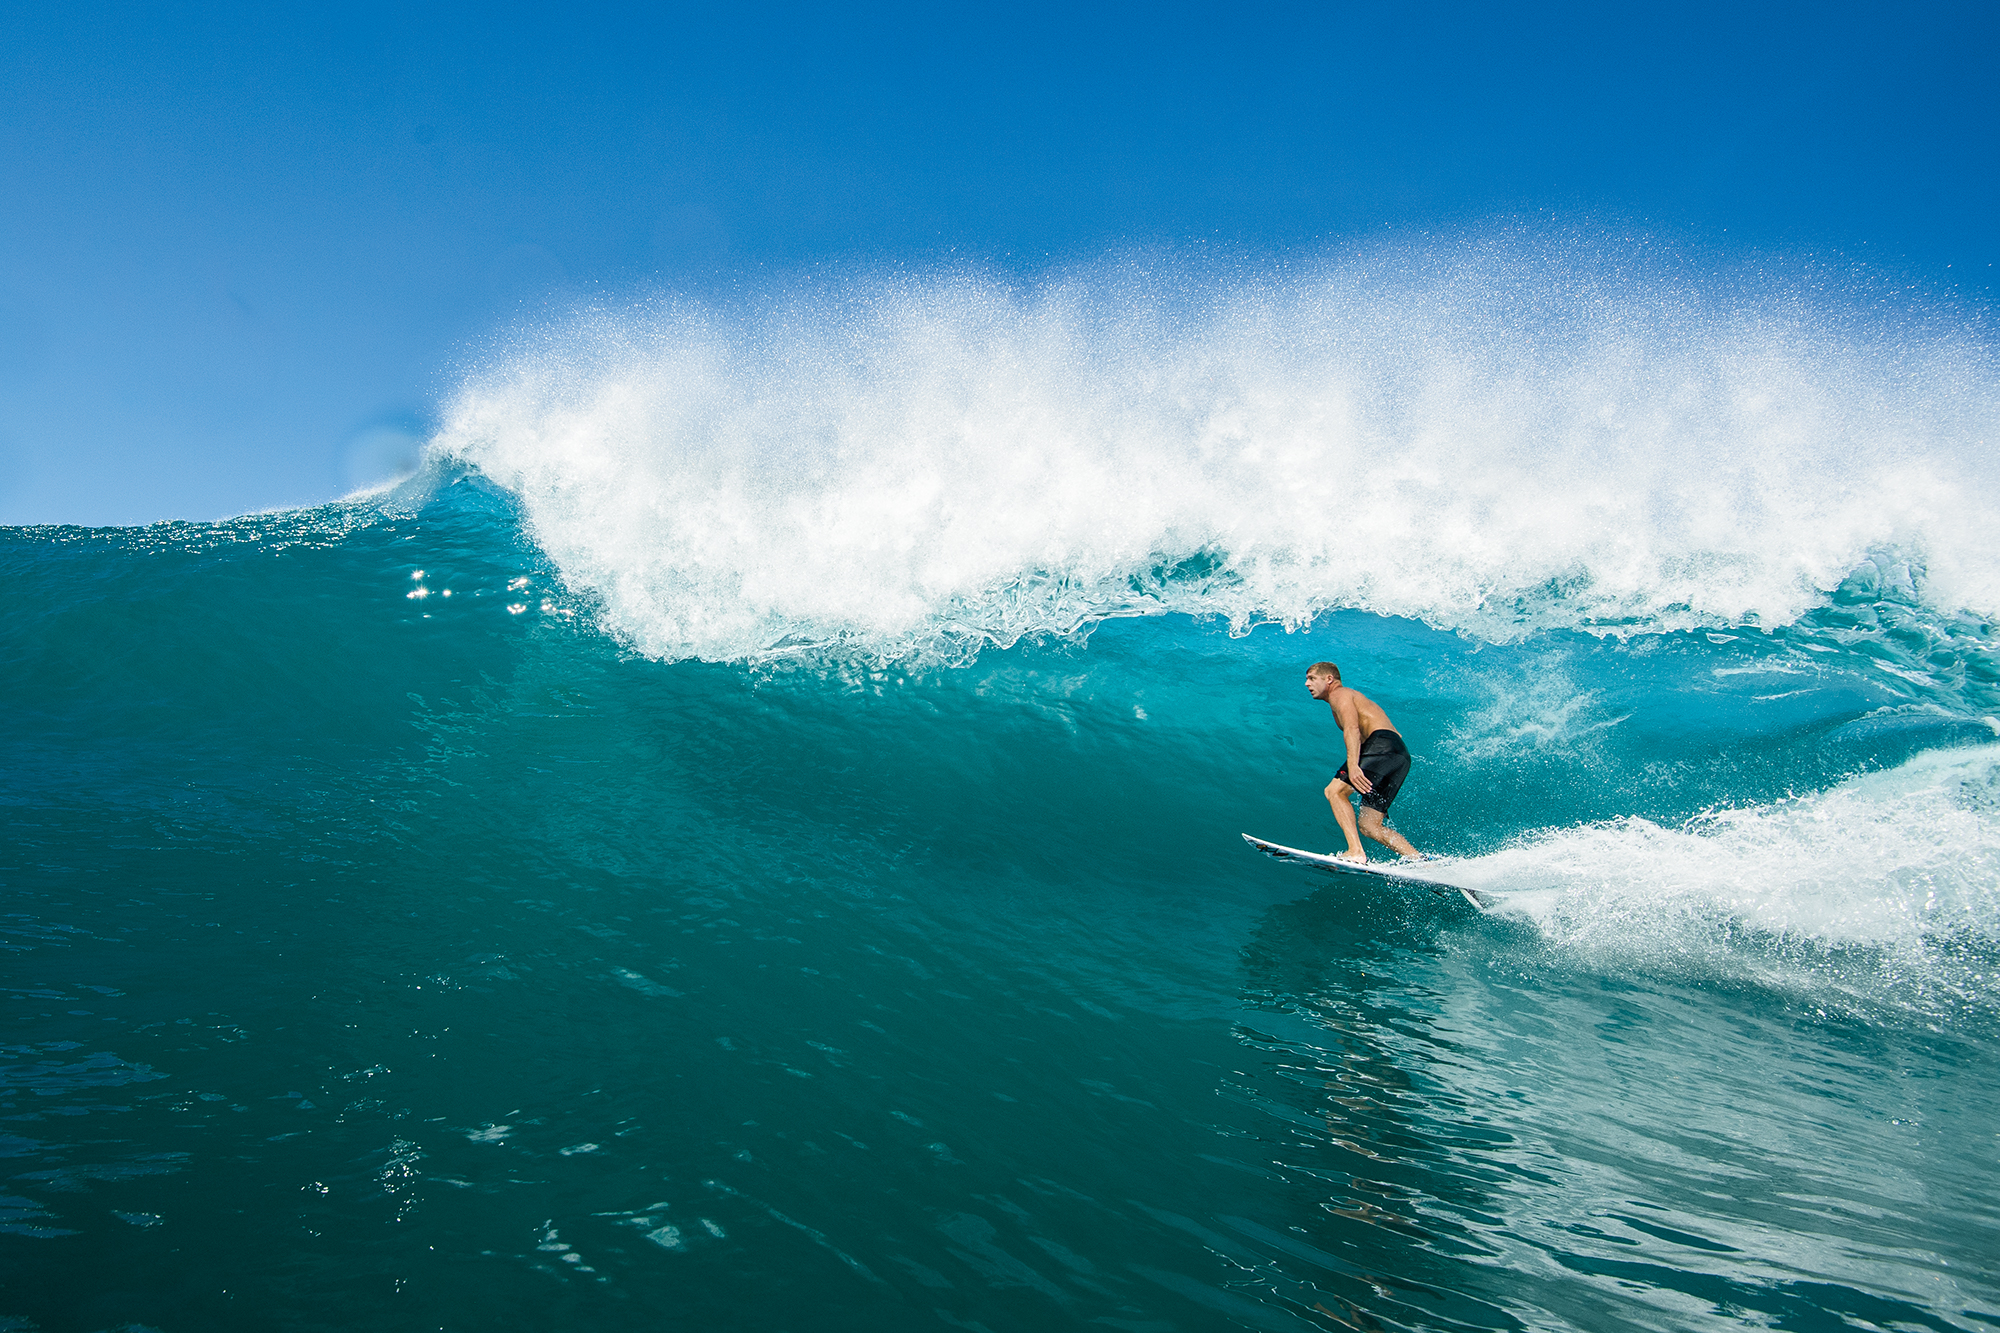 Mick Fanning Opens Up About Retirement And Life After Tour